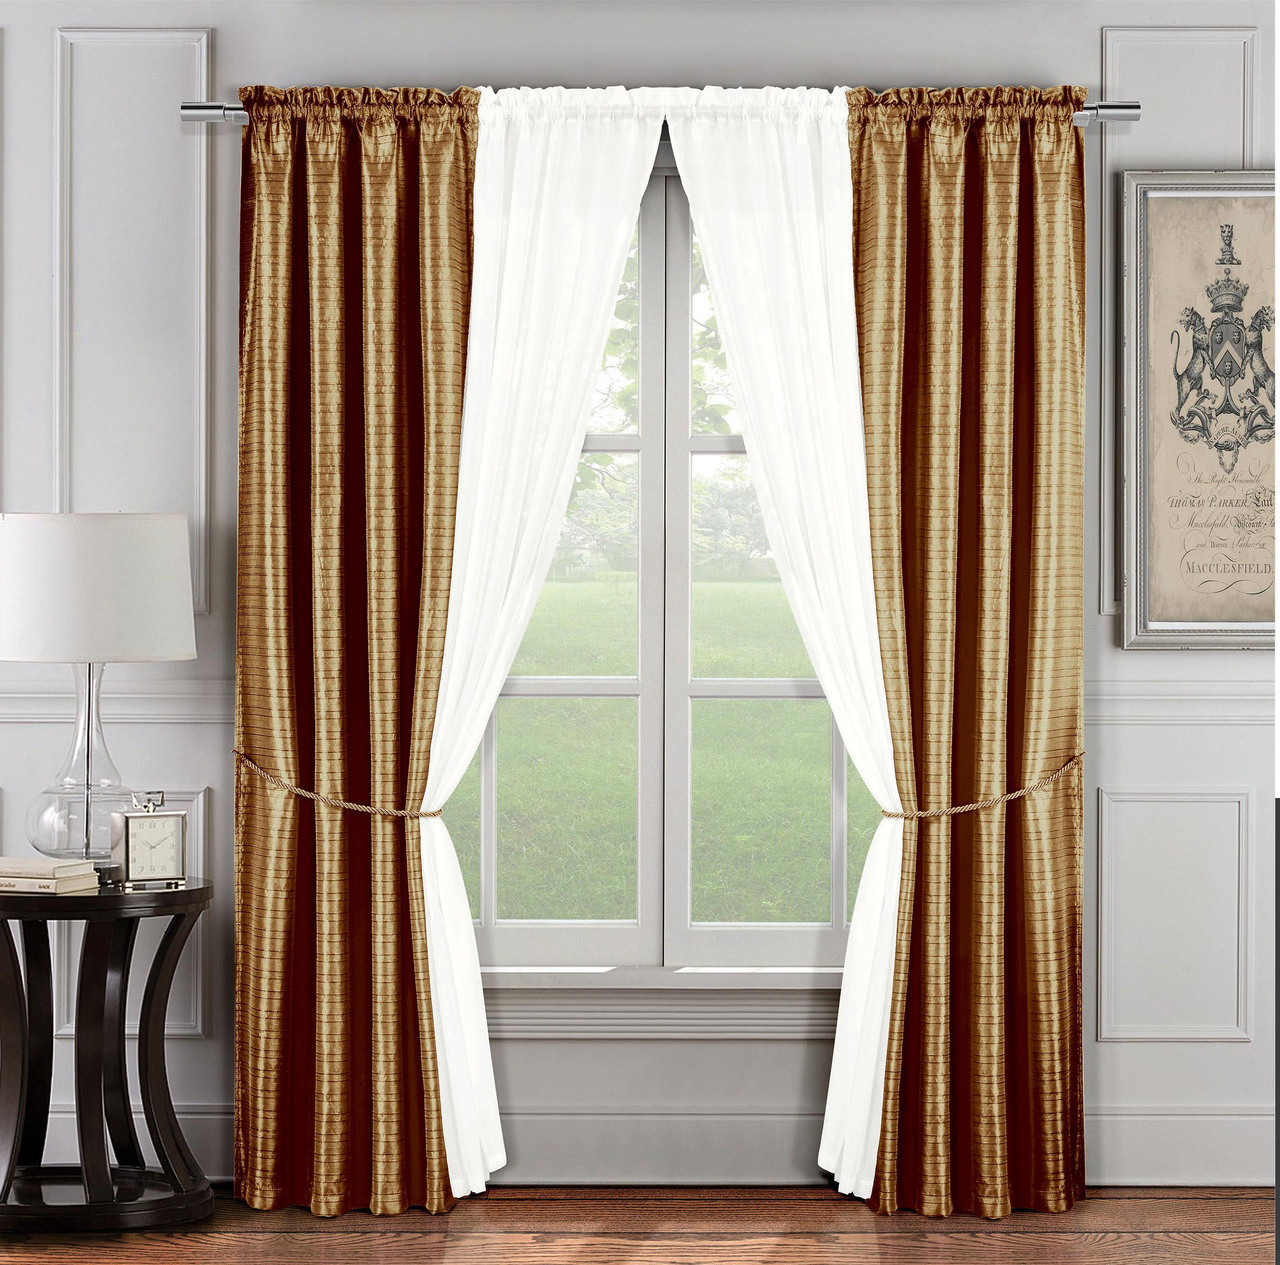 Tie Back Kitchen Curtains: 6 Pc. Window Curtain Set: Gold And Ivory, 2 Panels, 2